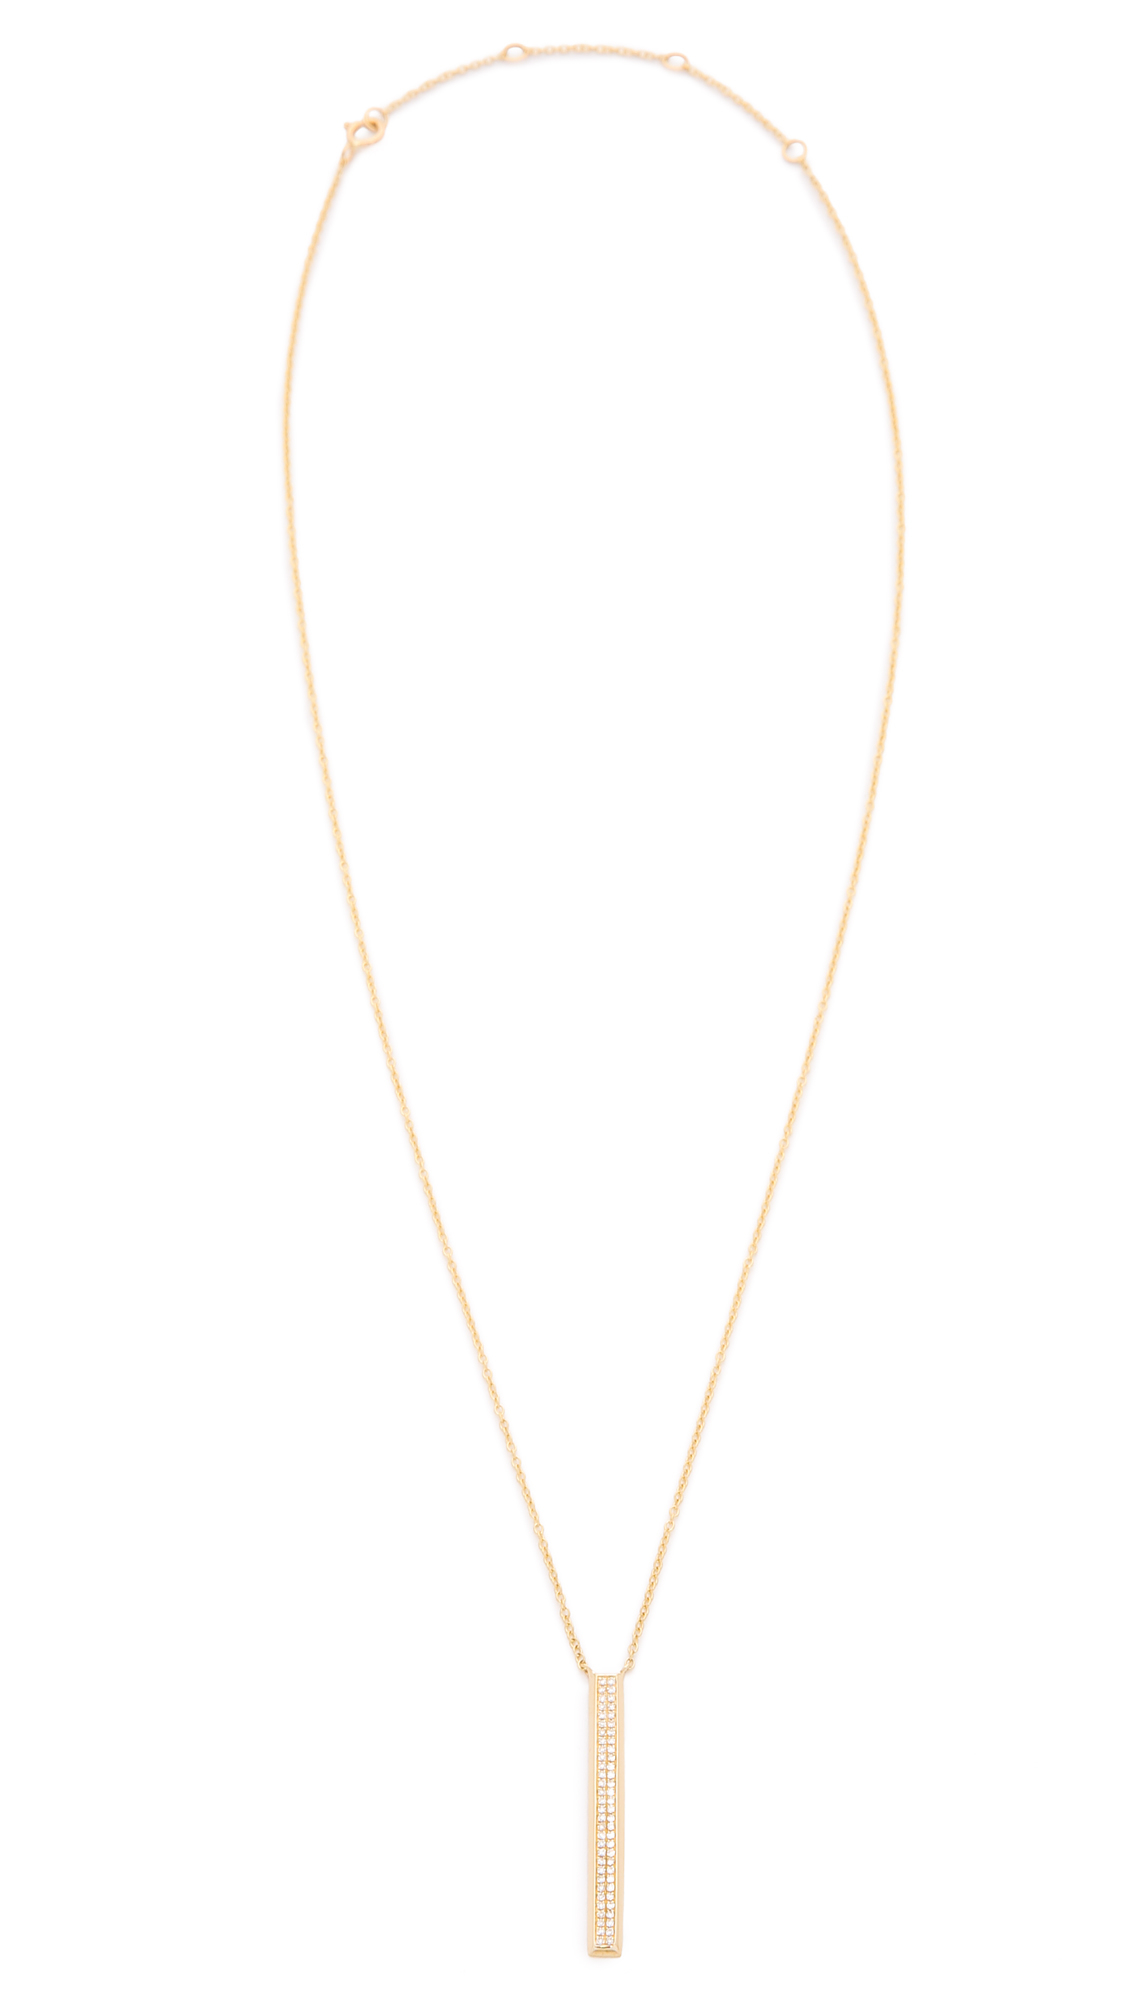 y sharpen vertical necklace prd jsp bar hei op wid gold product pendant